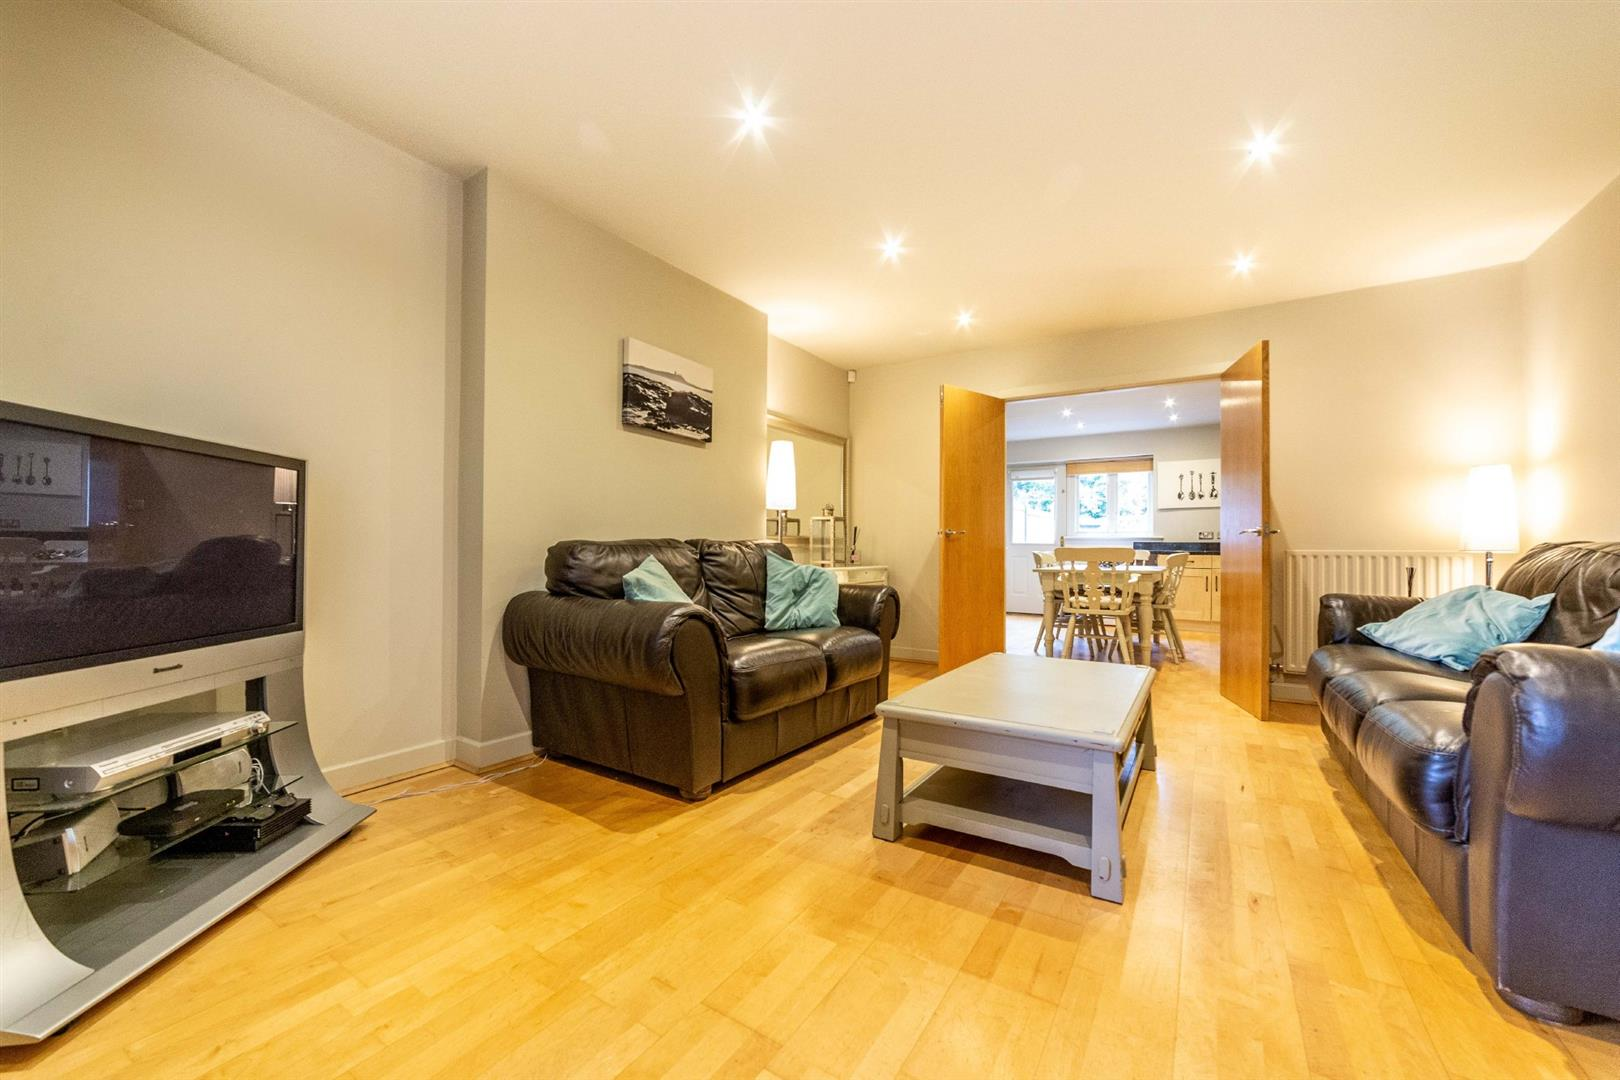 3 bed end of terrace house to rent in Newcastle Upon Tyne, NE3 3BZ, NE3